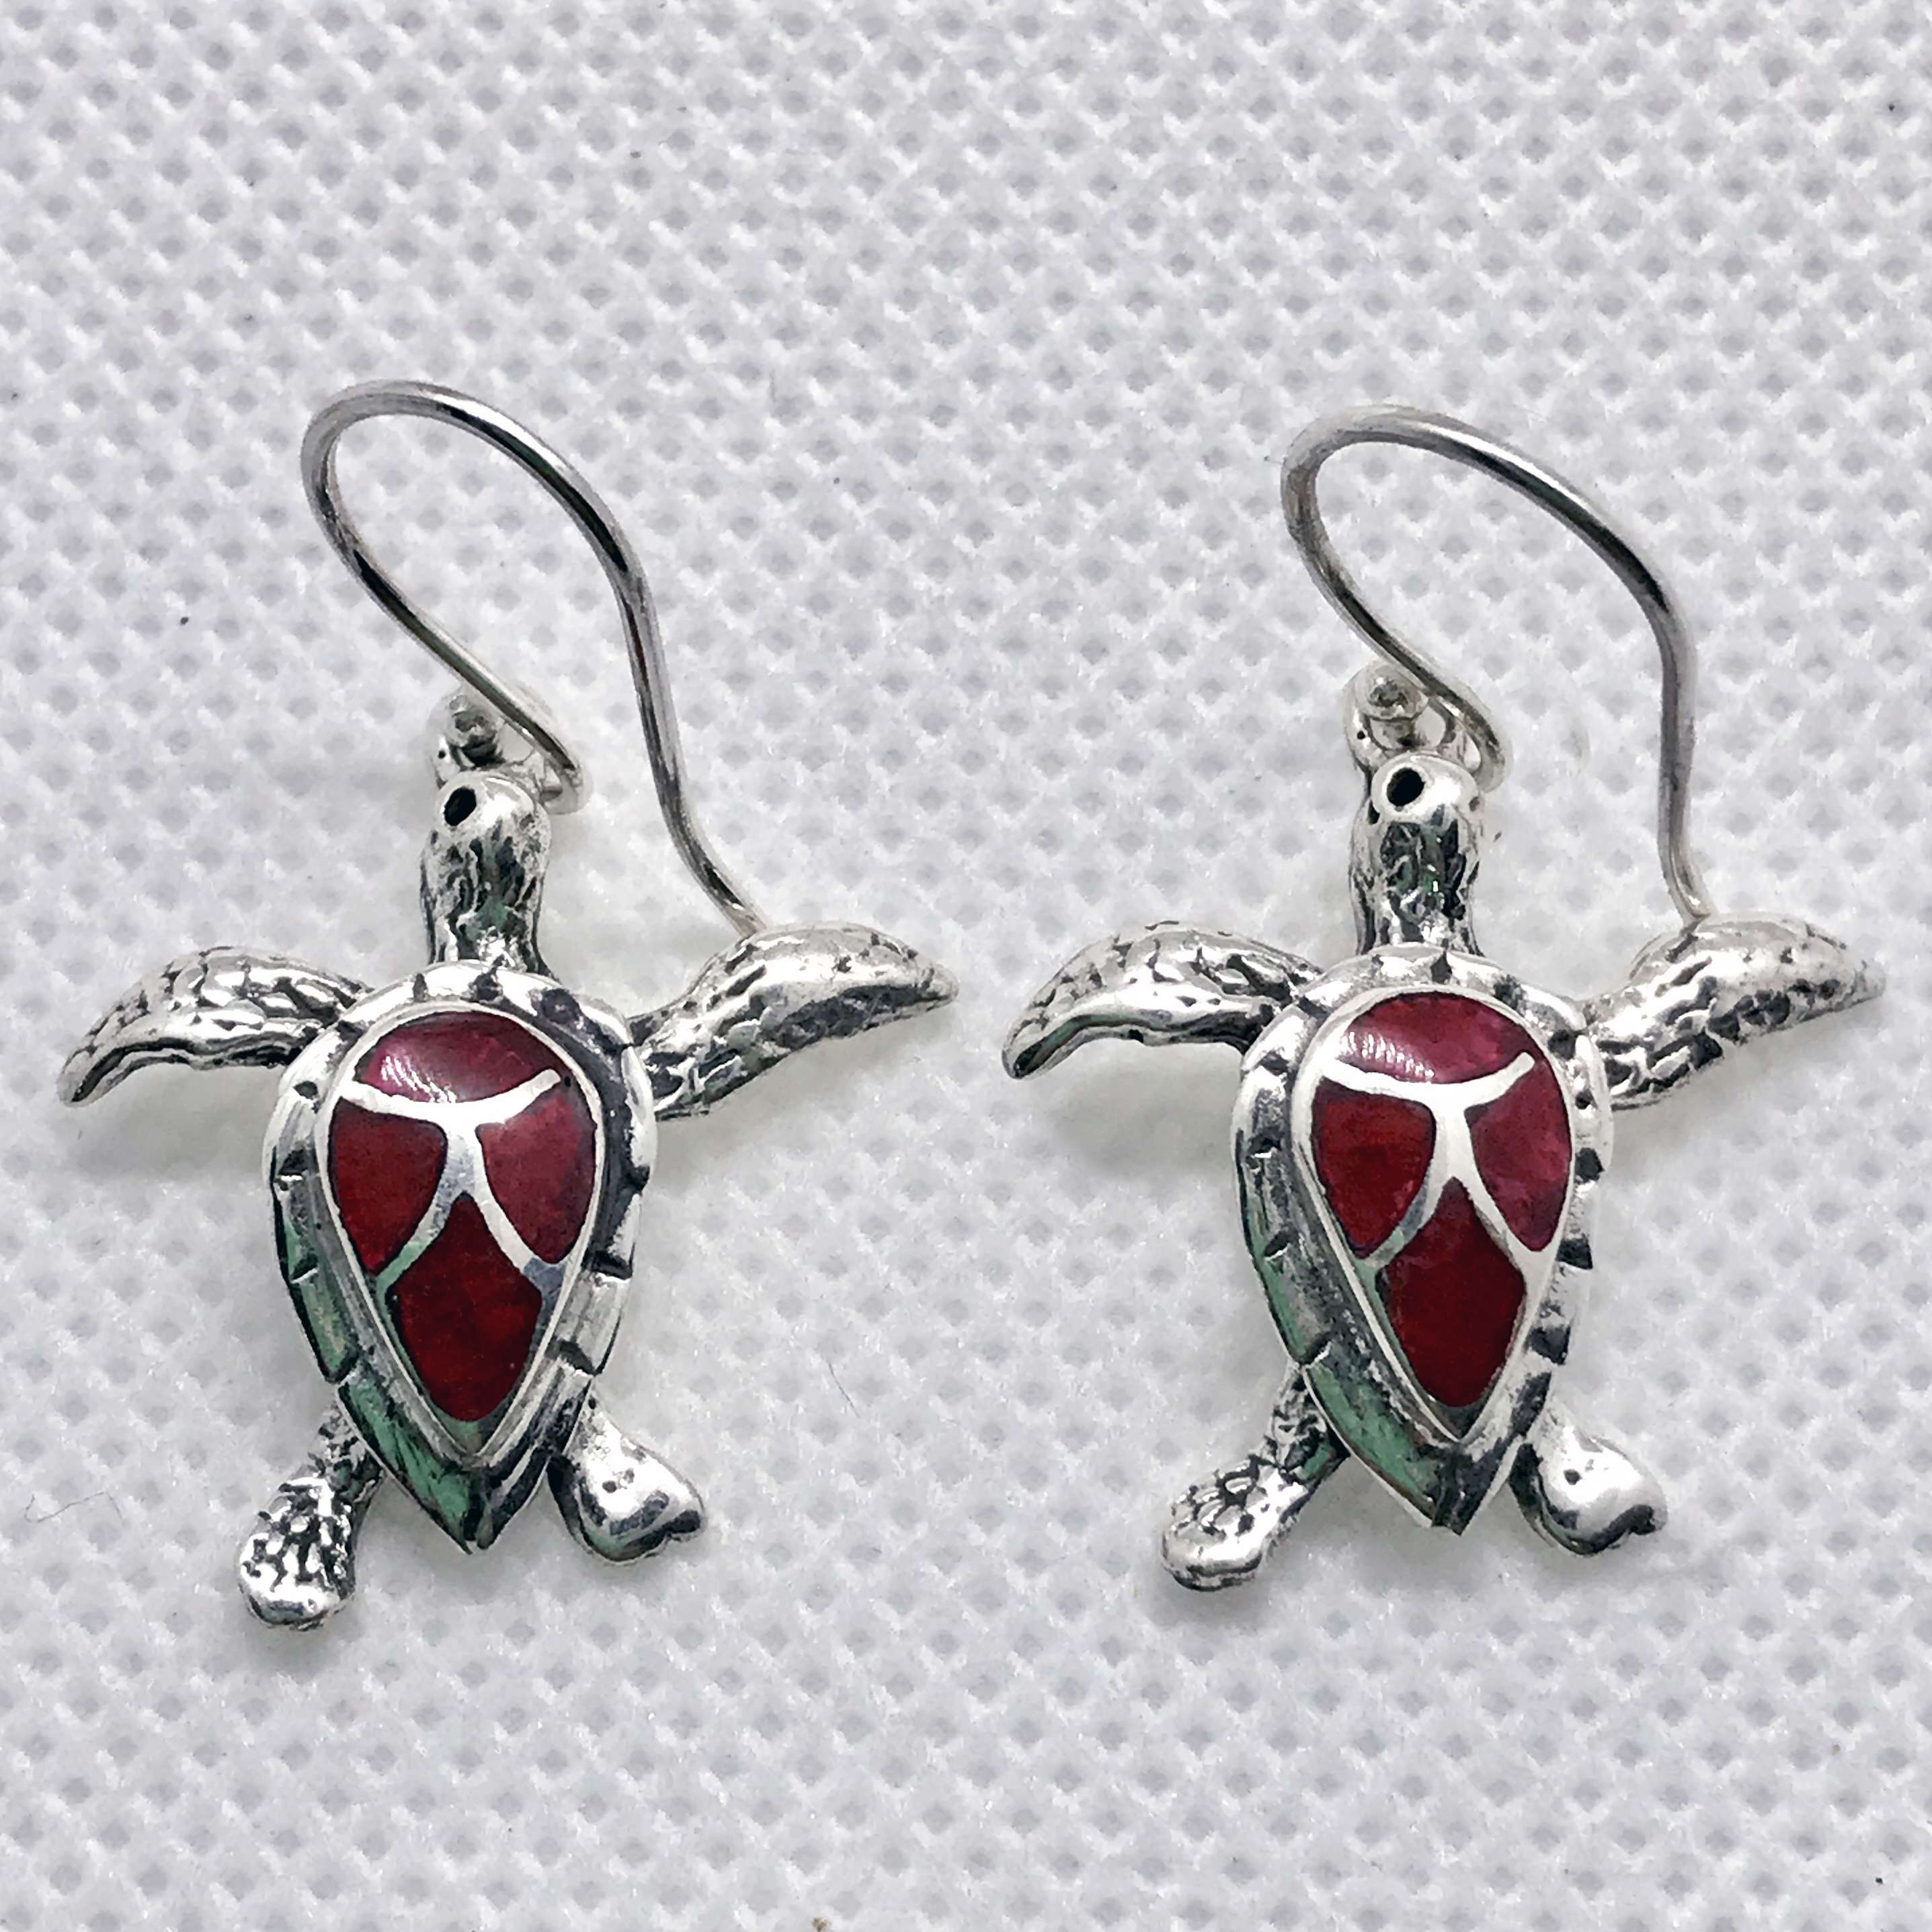 (HANDMADE 925 BALI SILVER TURTLE EARRINGS WITH CORAL)